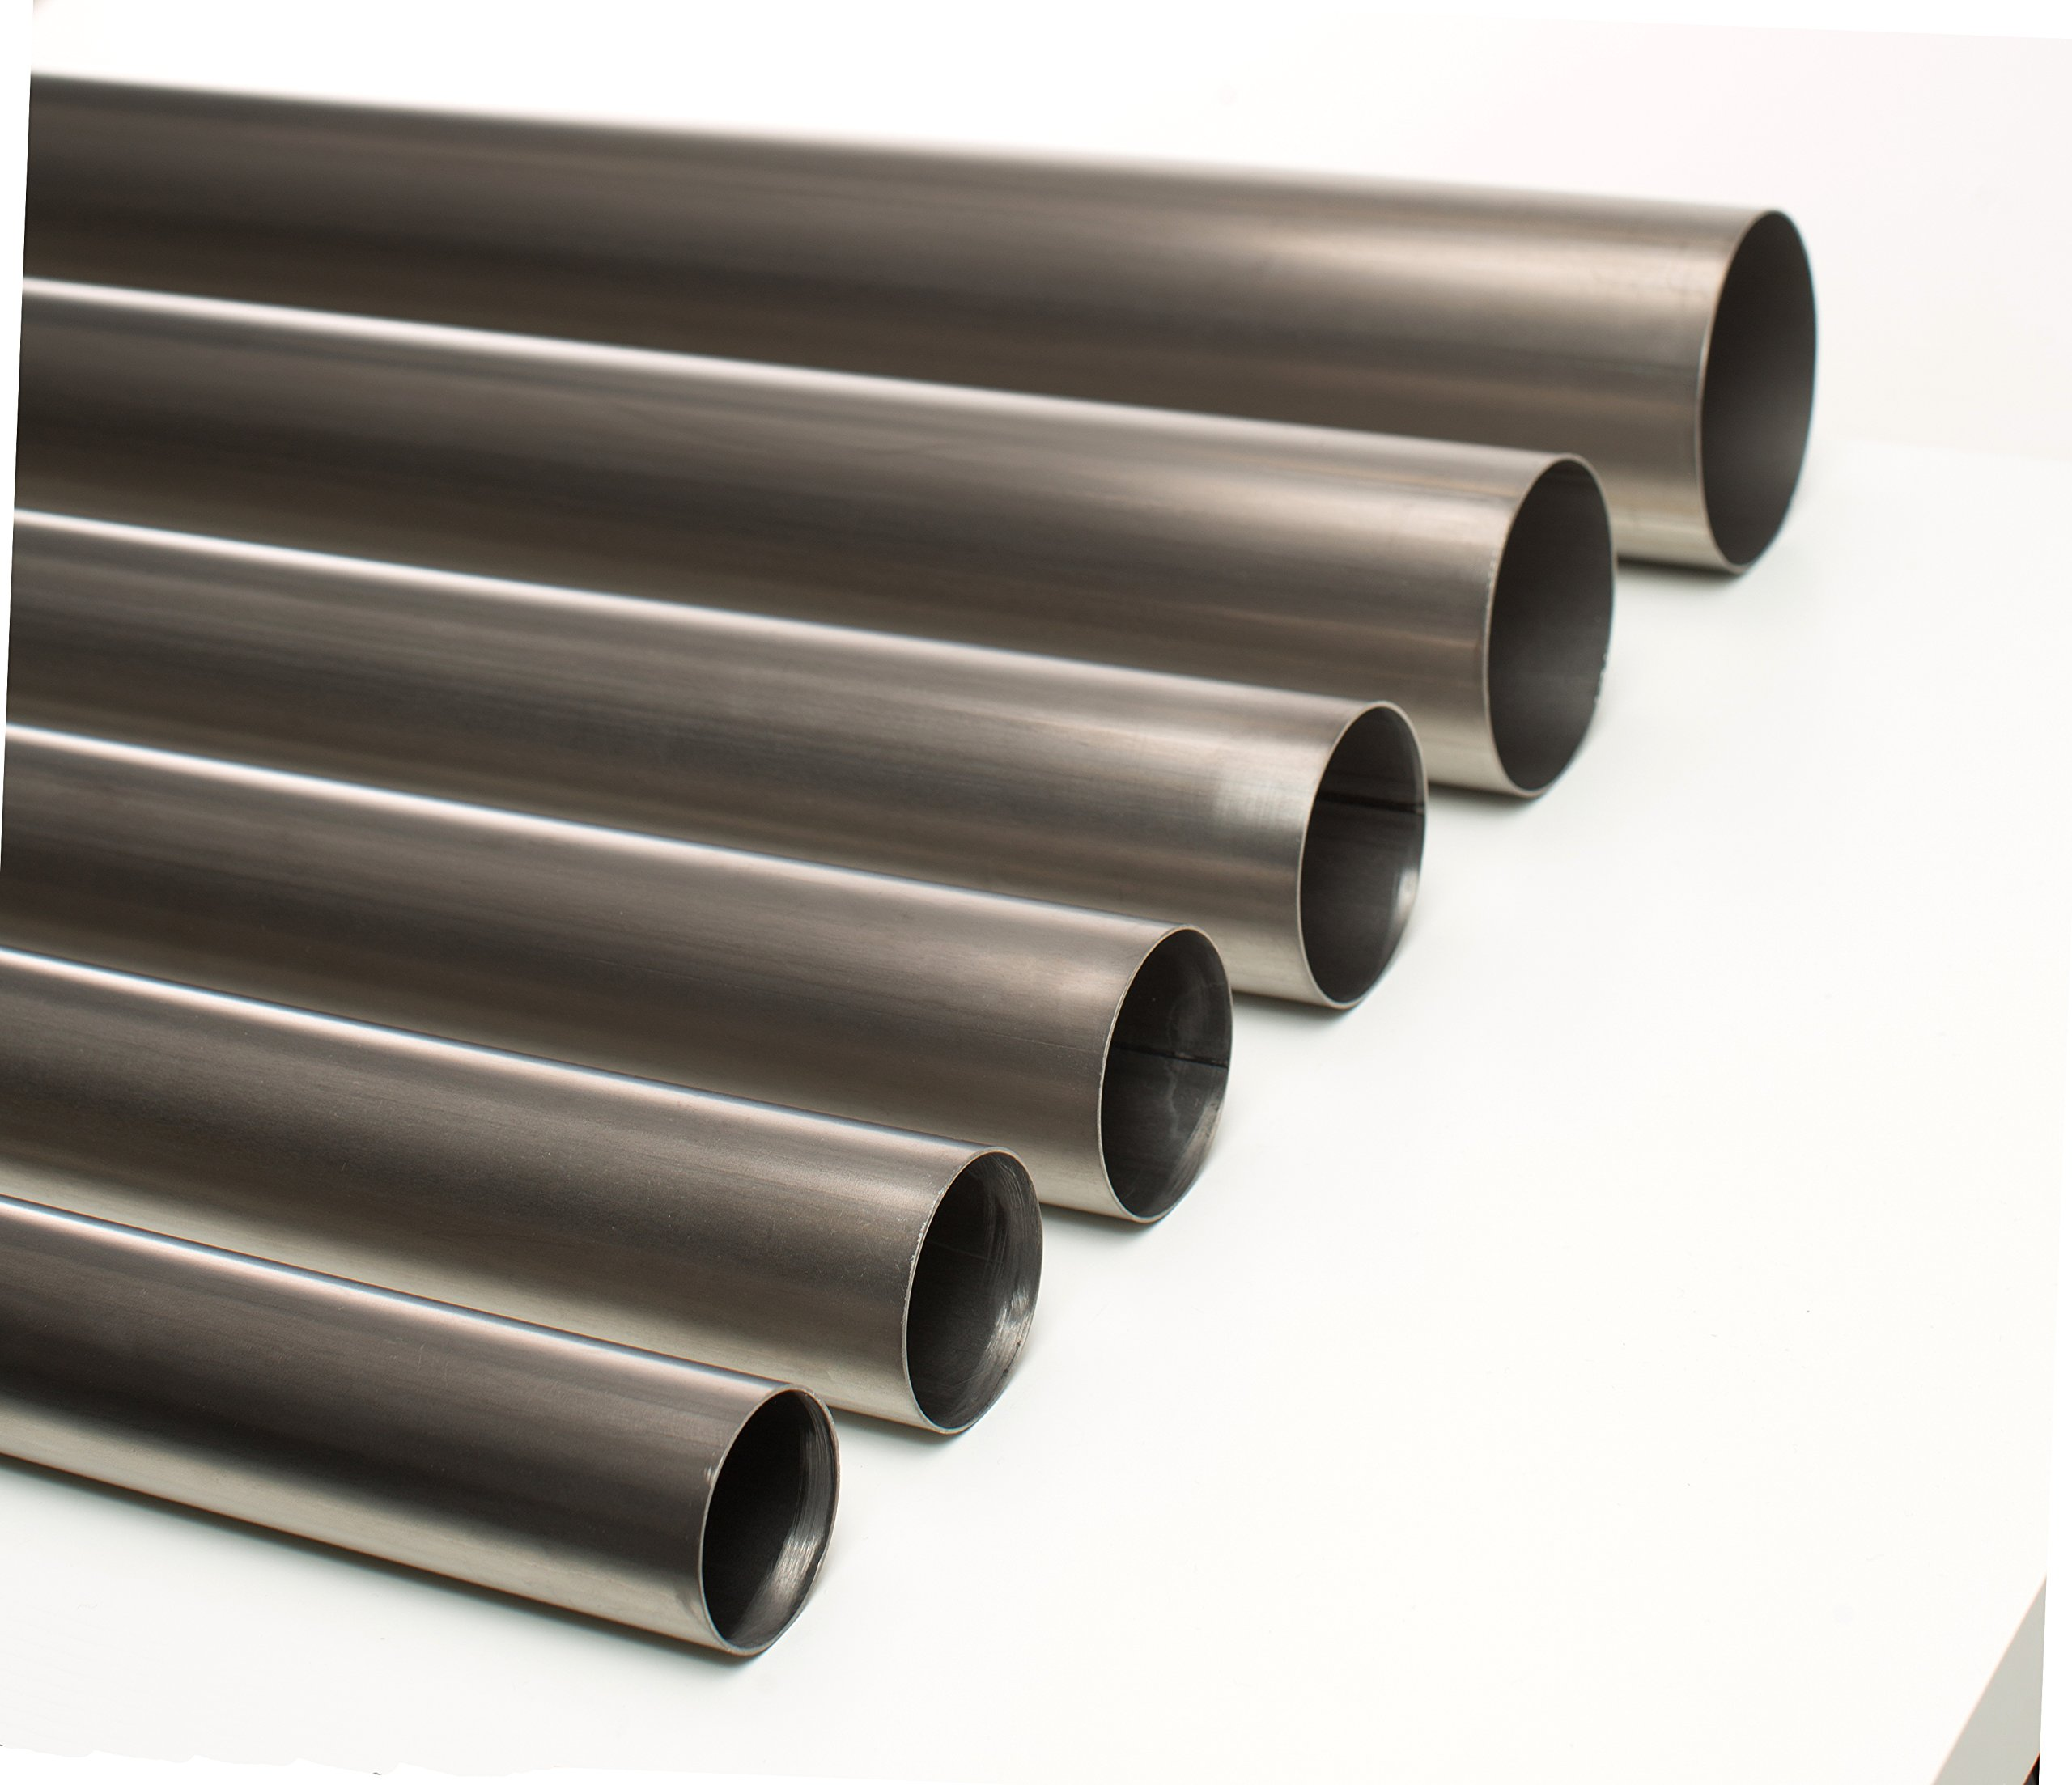 Ticon Industries - Titanium 1.75'' Inch Diameter Exhaust Tubing 2 Foot Length 1.2mm/.047'' wall (Qty 1) - 102-04524-0000